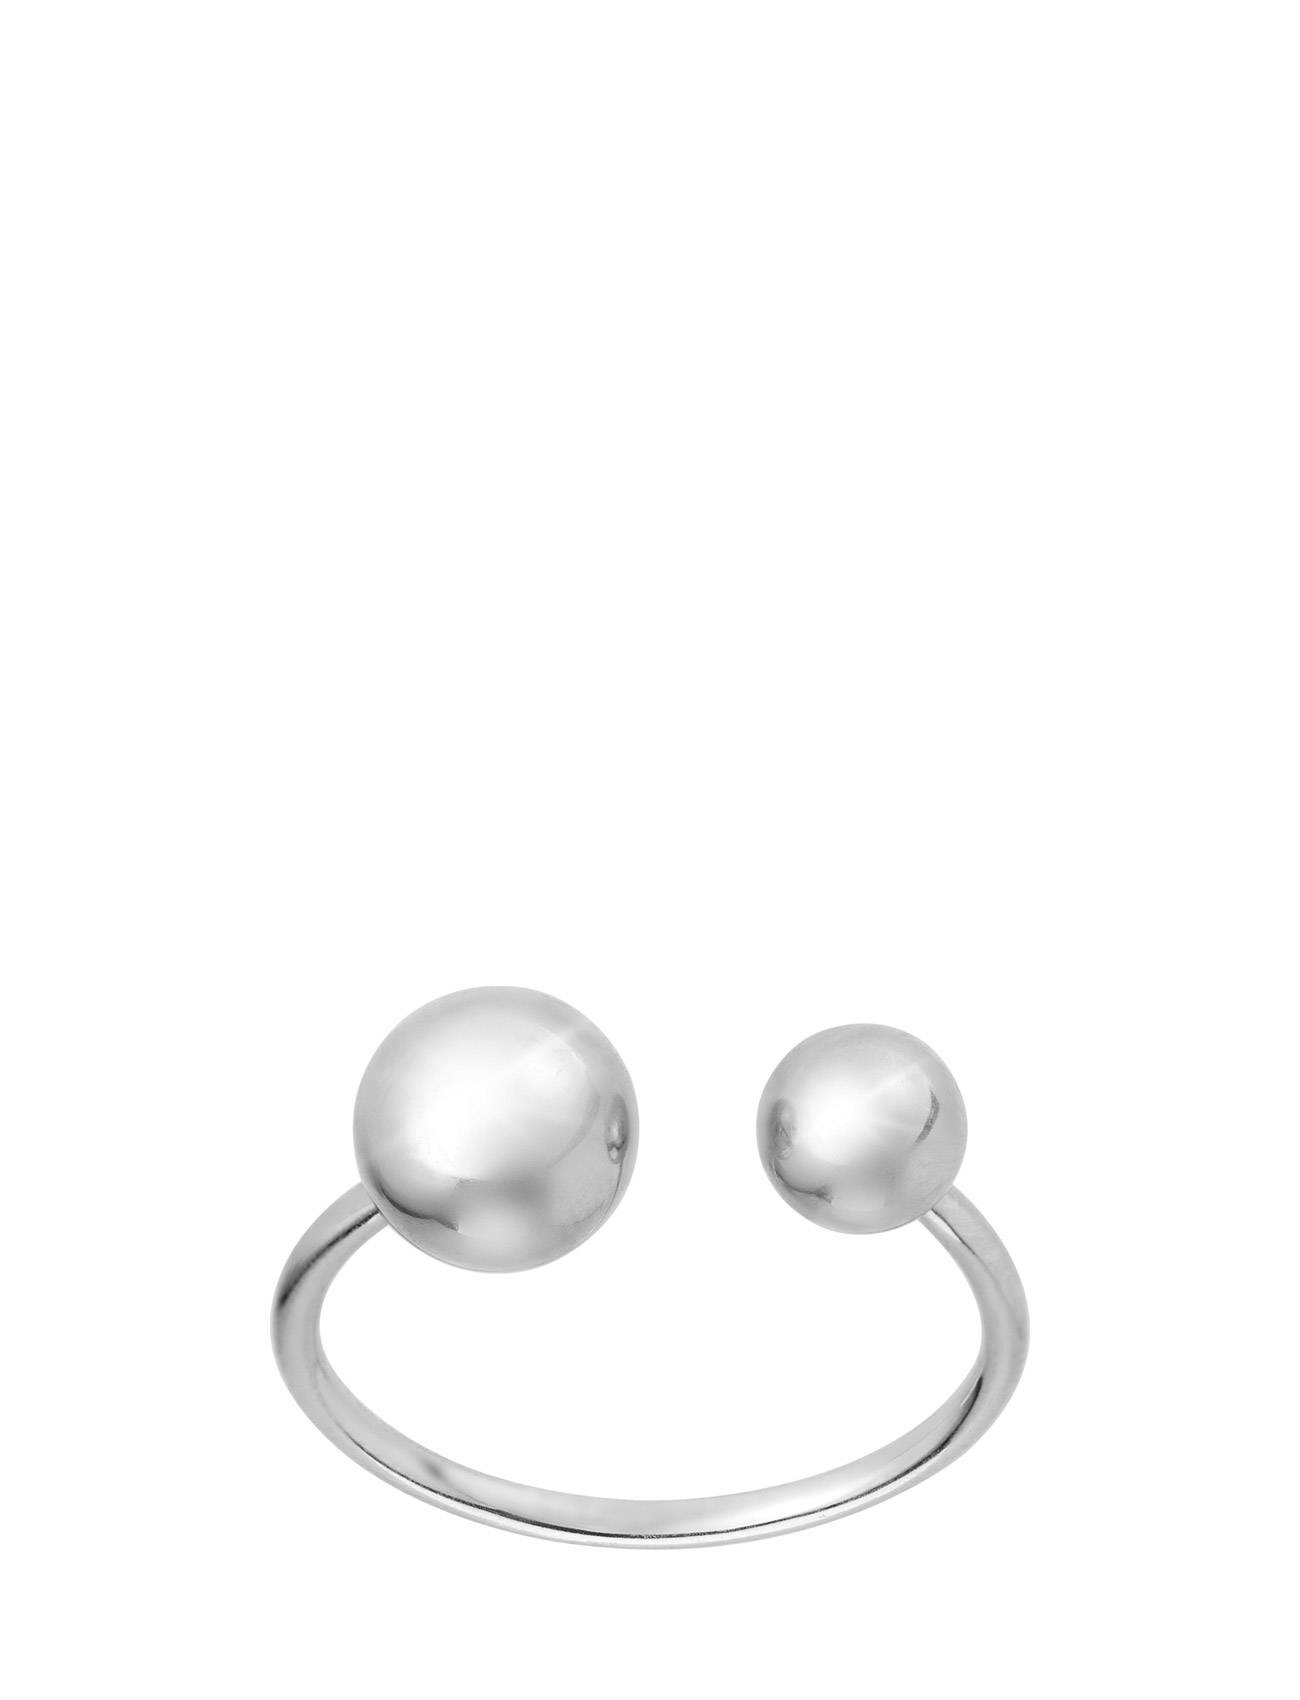 SOPHIE by SOPHIE Two Planet Ring